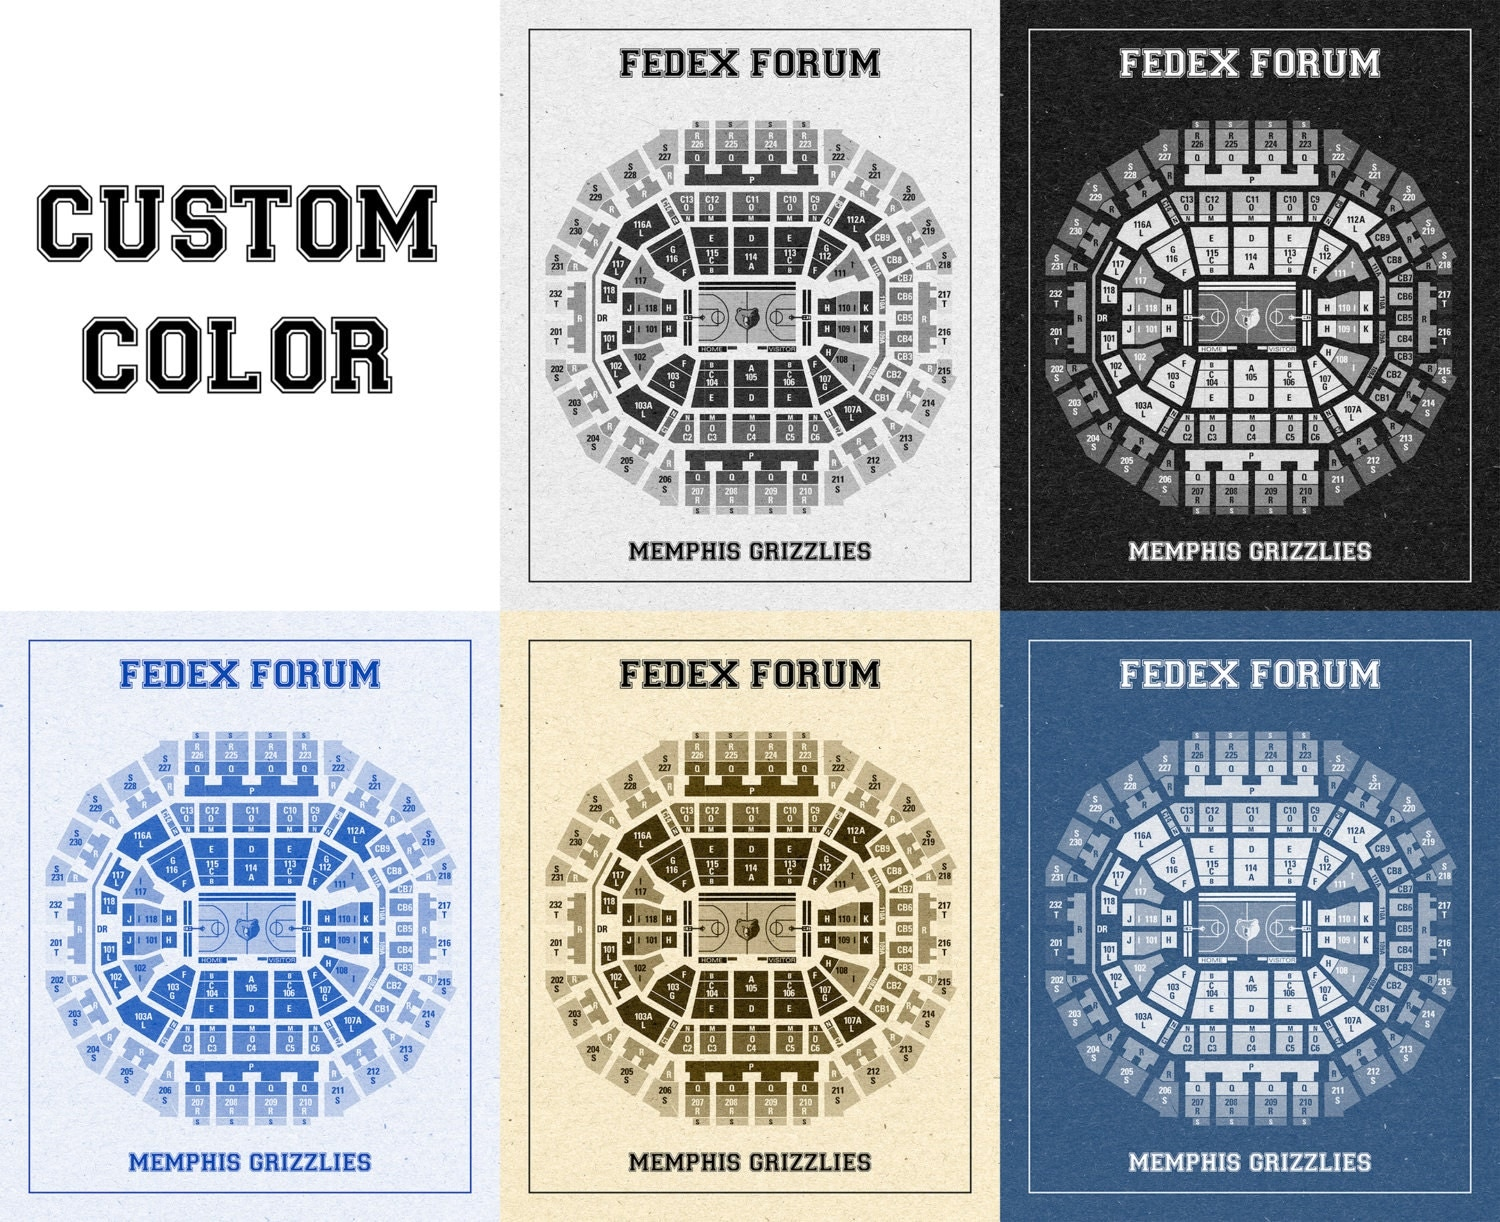 Vintage Print Of Fedex Forum Seating Chart On Premium Photo Luster Paper Heavy Matte Or Stretched Canvas Free Shipping